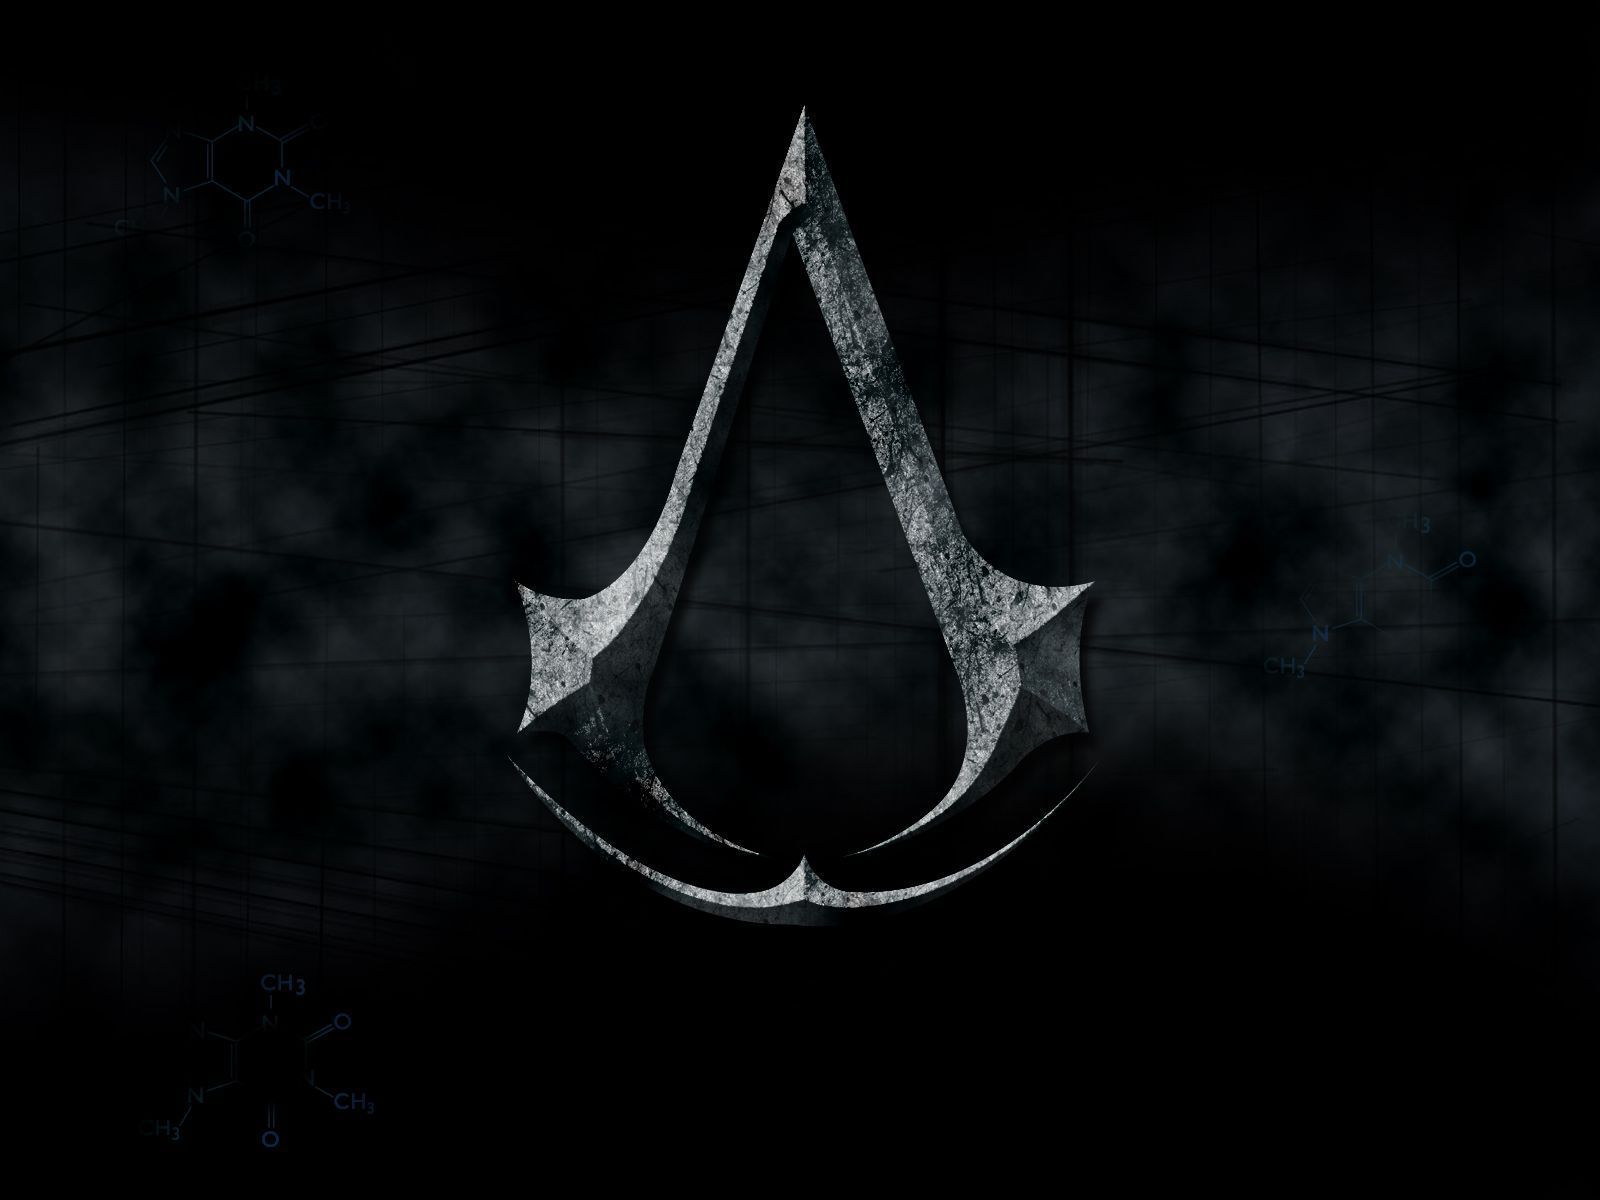 assassins creed wallpapers hd wallpaper 1920a—1080 assassin creed